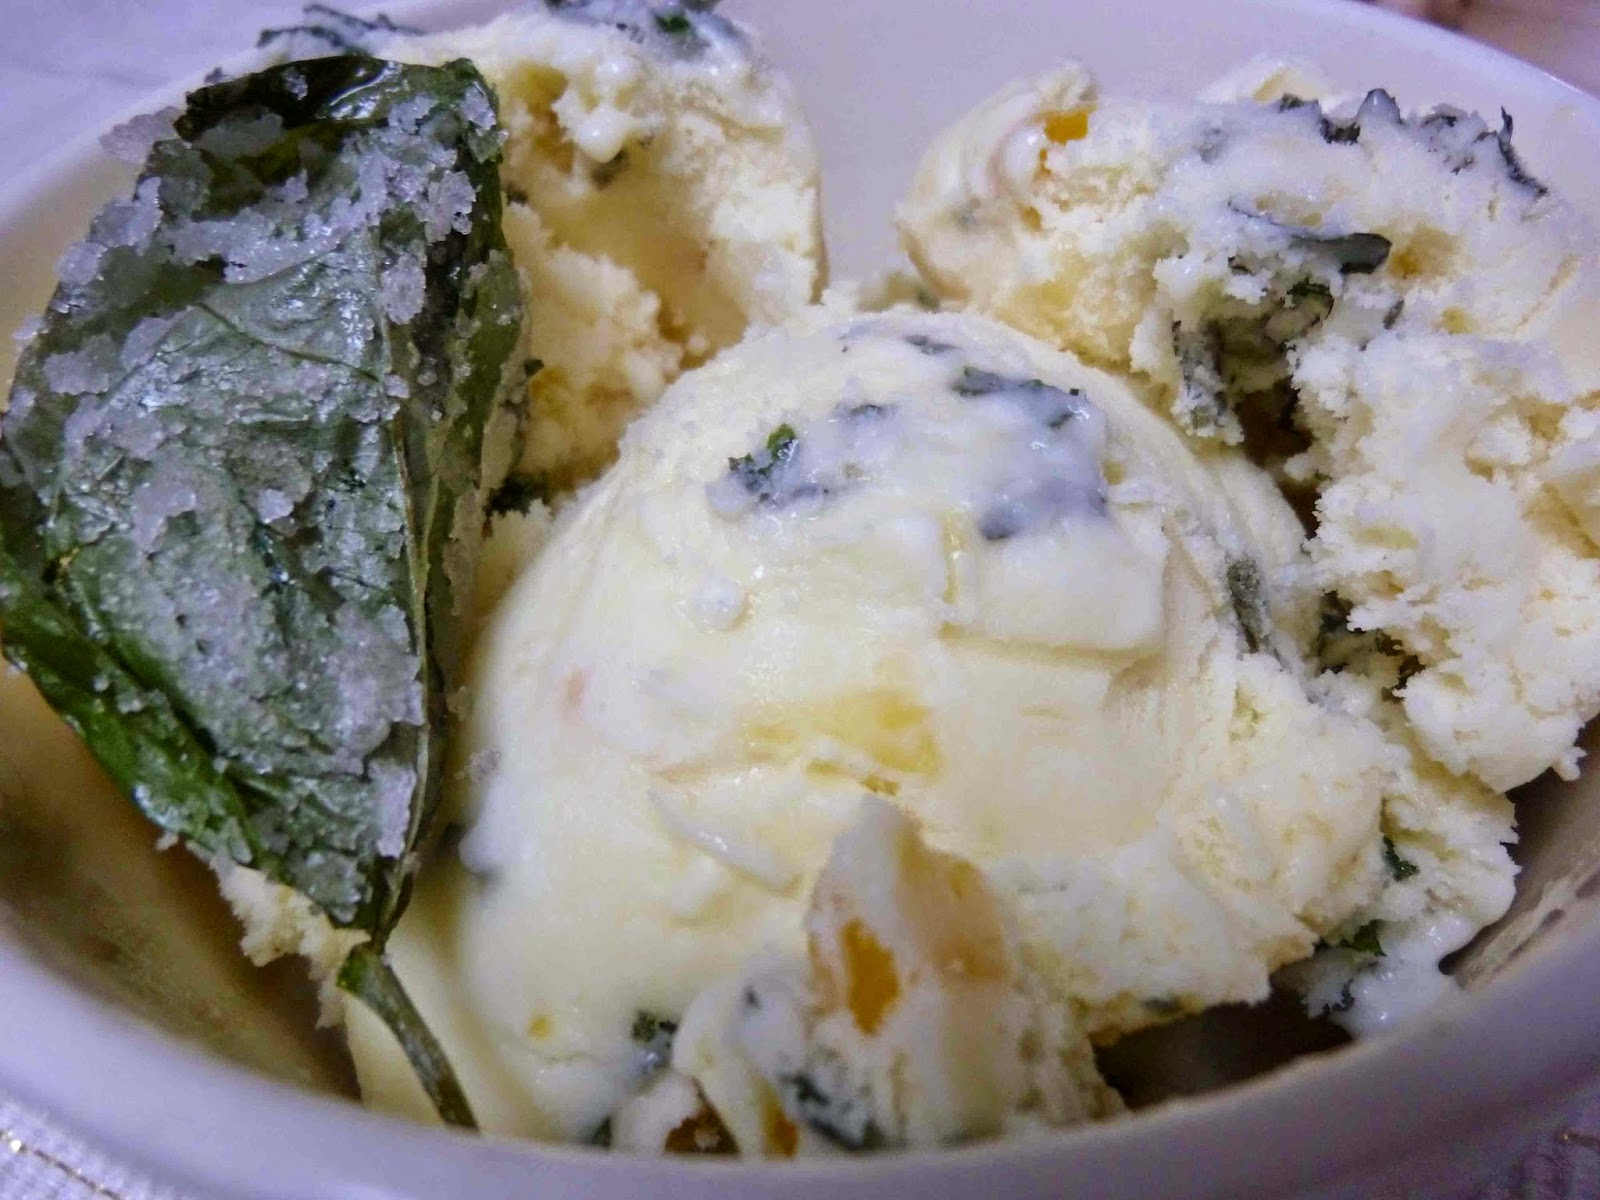 Diary of a Mad Hausfrau: Sweet Corn Ice Cream with Candied ...